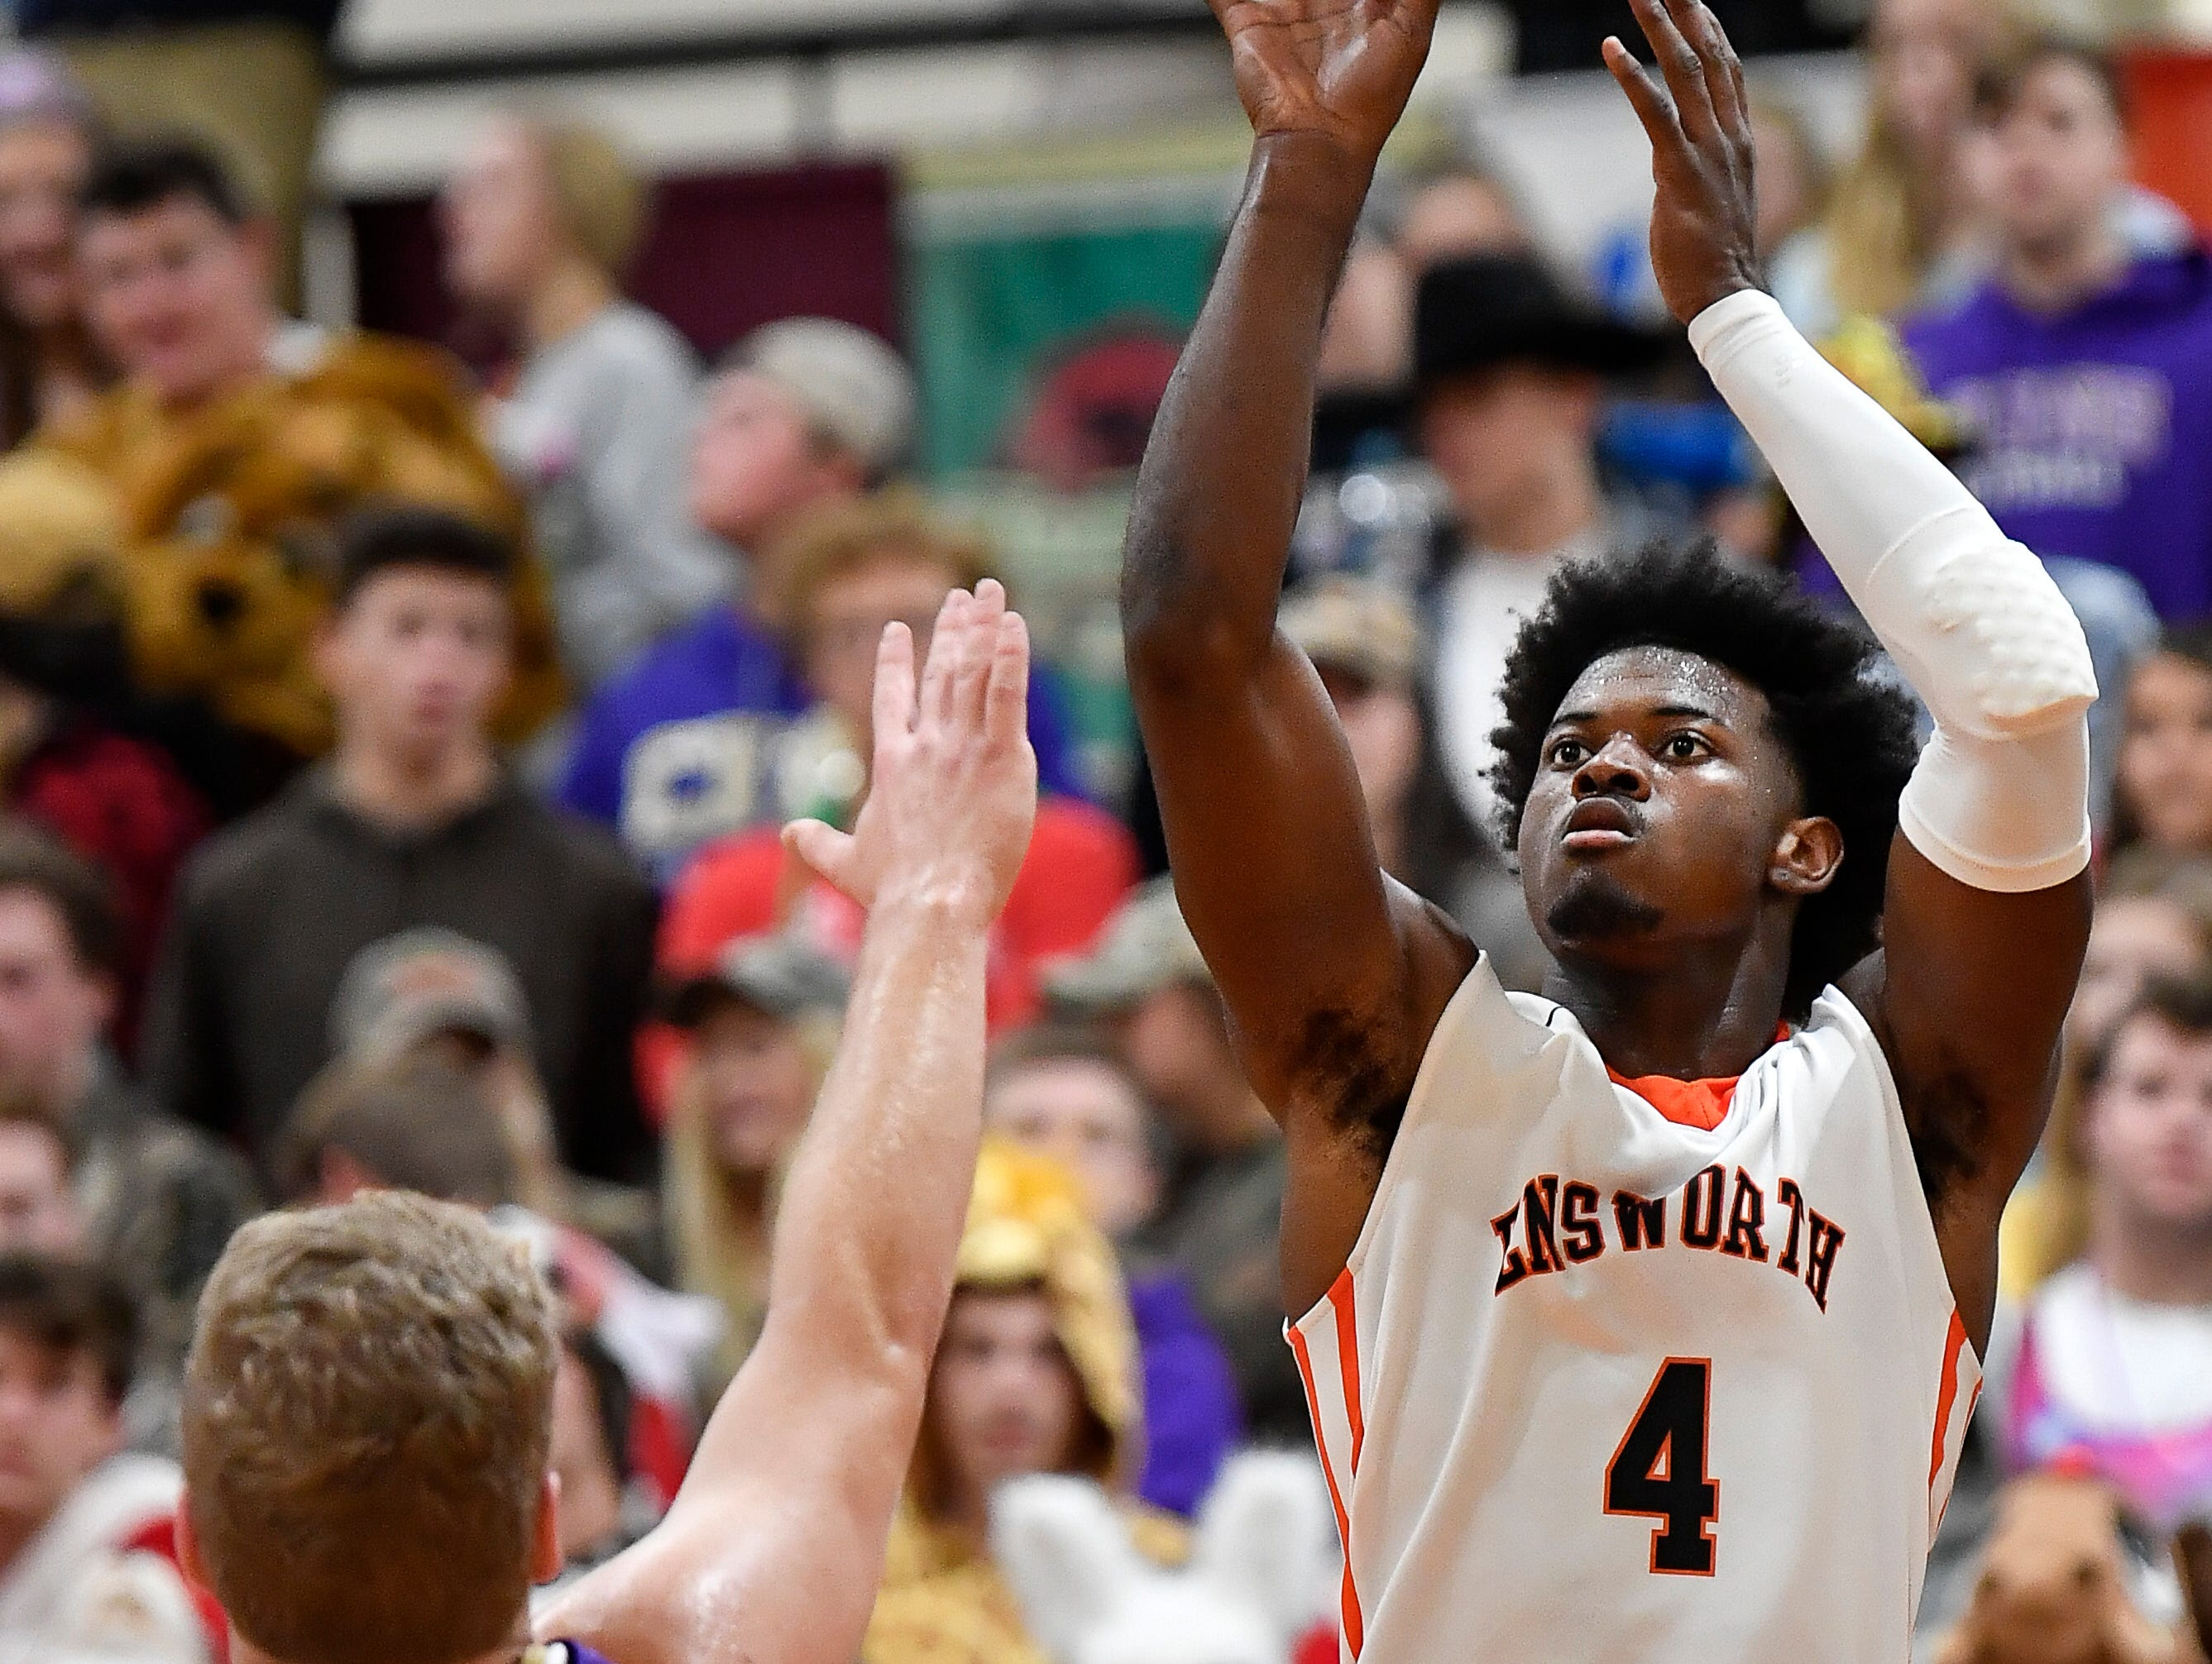 Ensworth forward Keshawn Lawrence (4) shoots over CPA's Dean Cooper (11) during their game at Ensworth High School Tuesday, Dec. 11, 2018, in Nashville, Tenn.